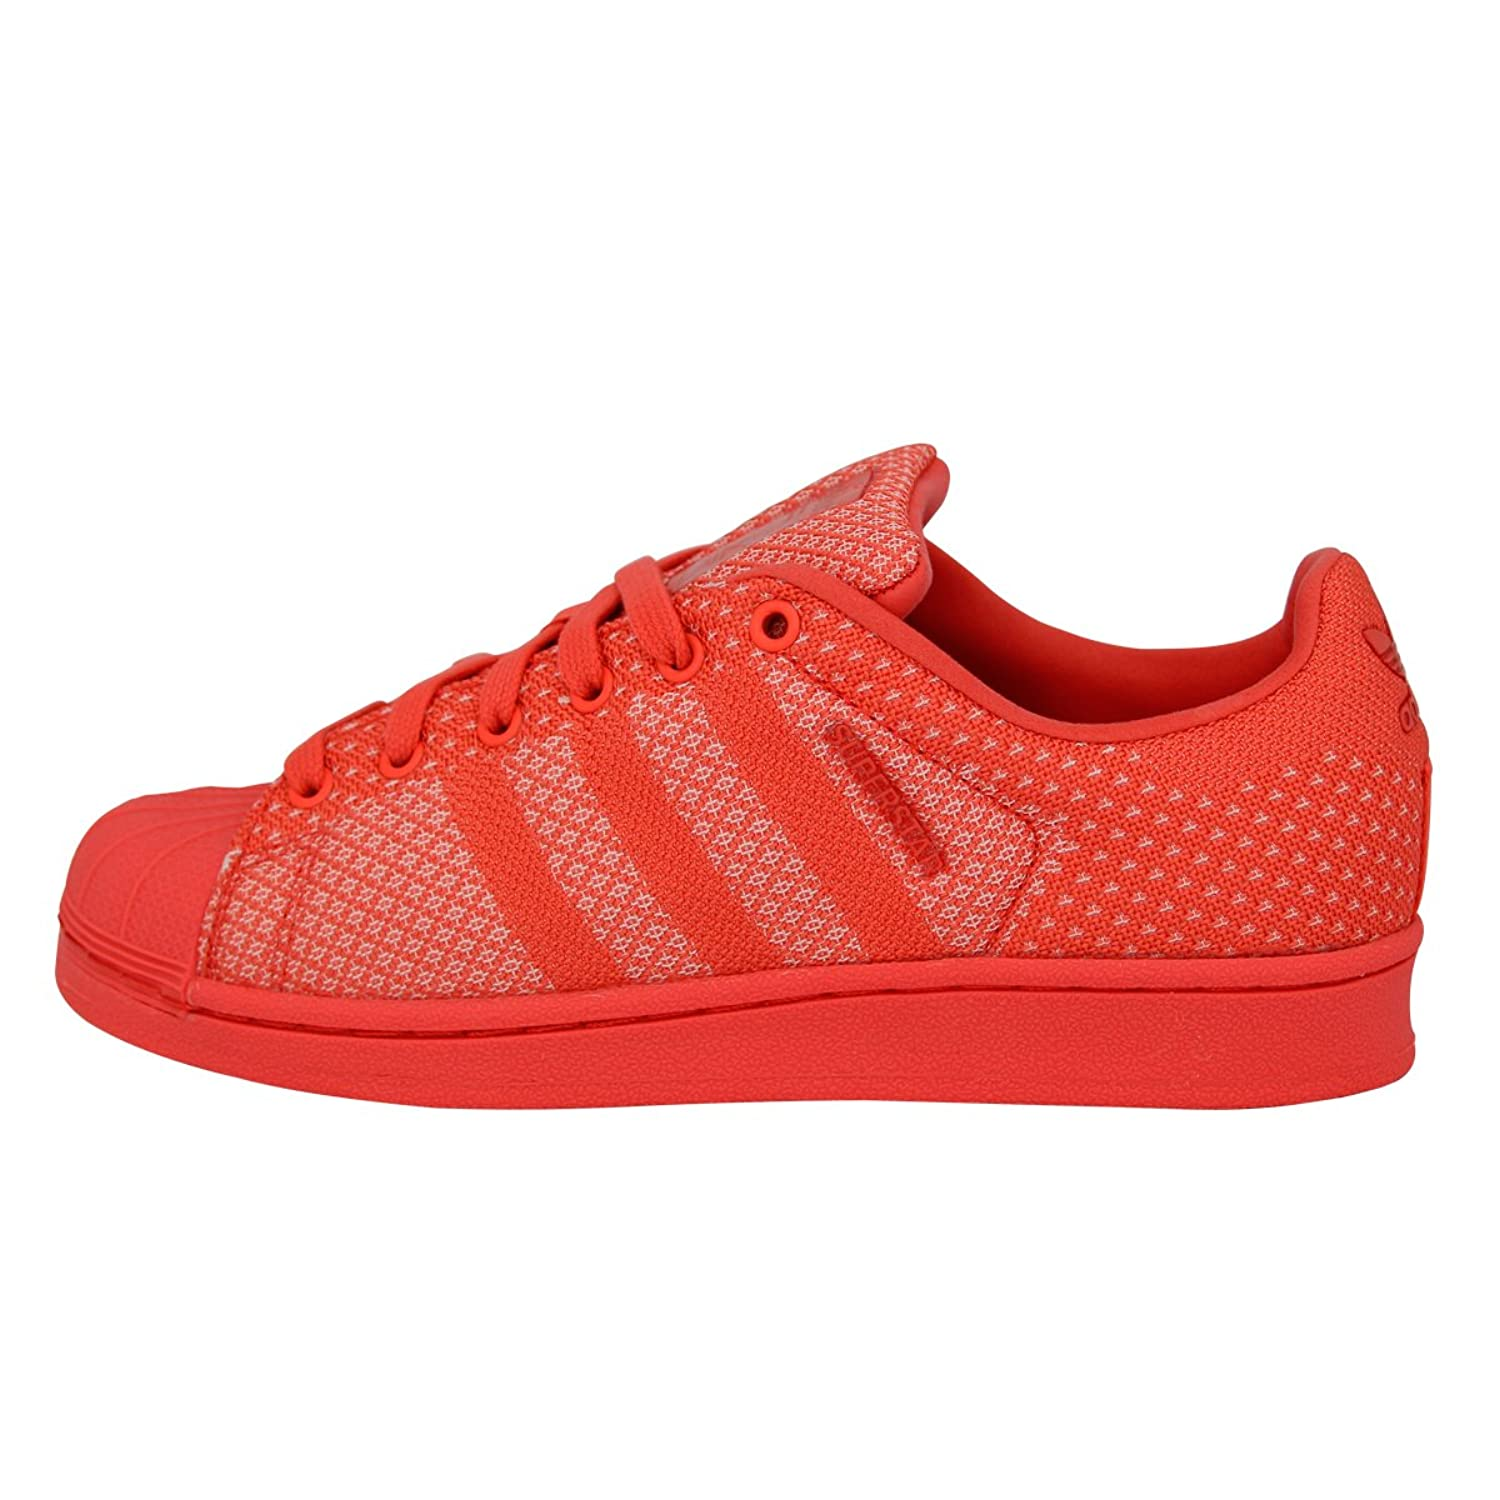 Adidas Originals SUPERSTAR WEAVE Chaussures Mode Sneakers Unisex Rouge pzyI1